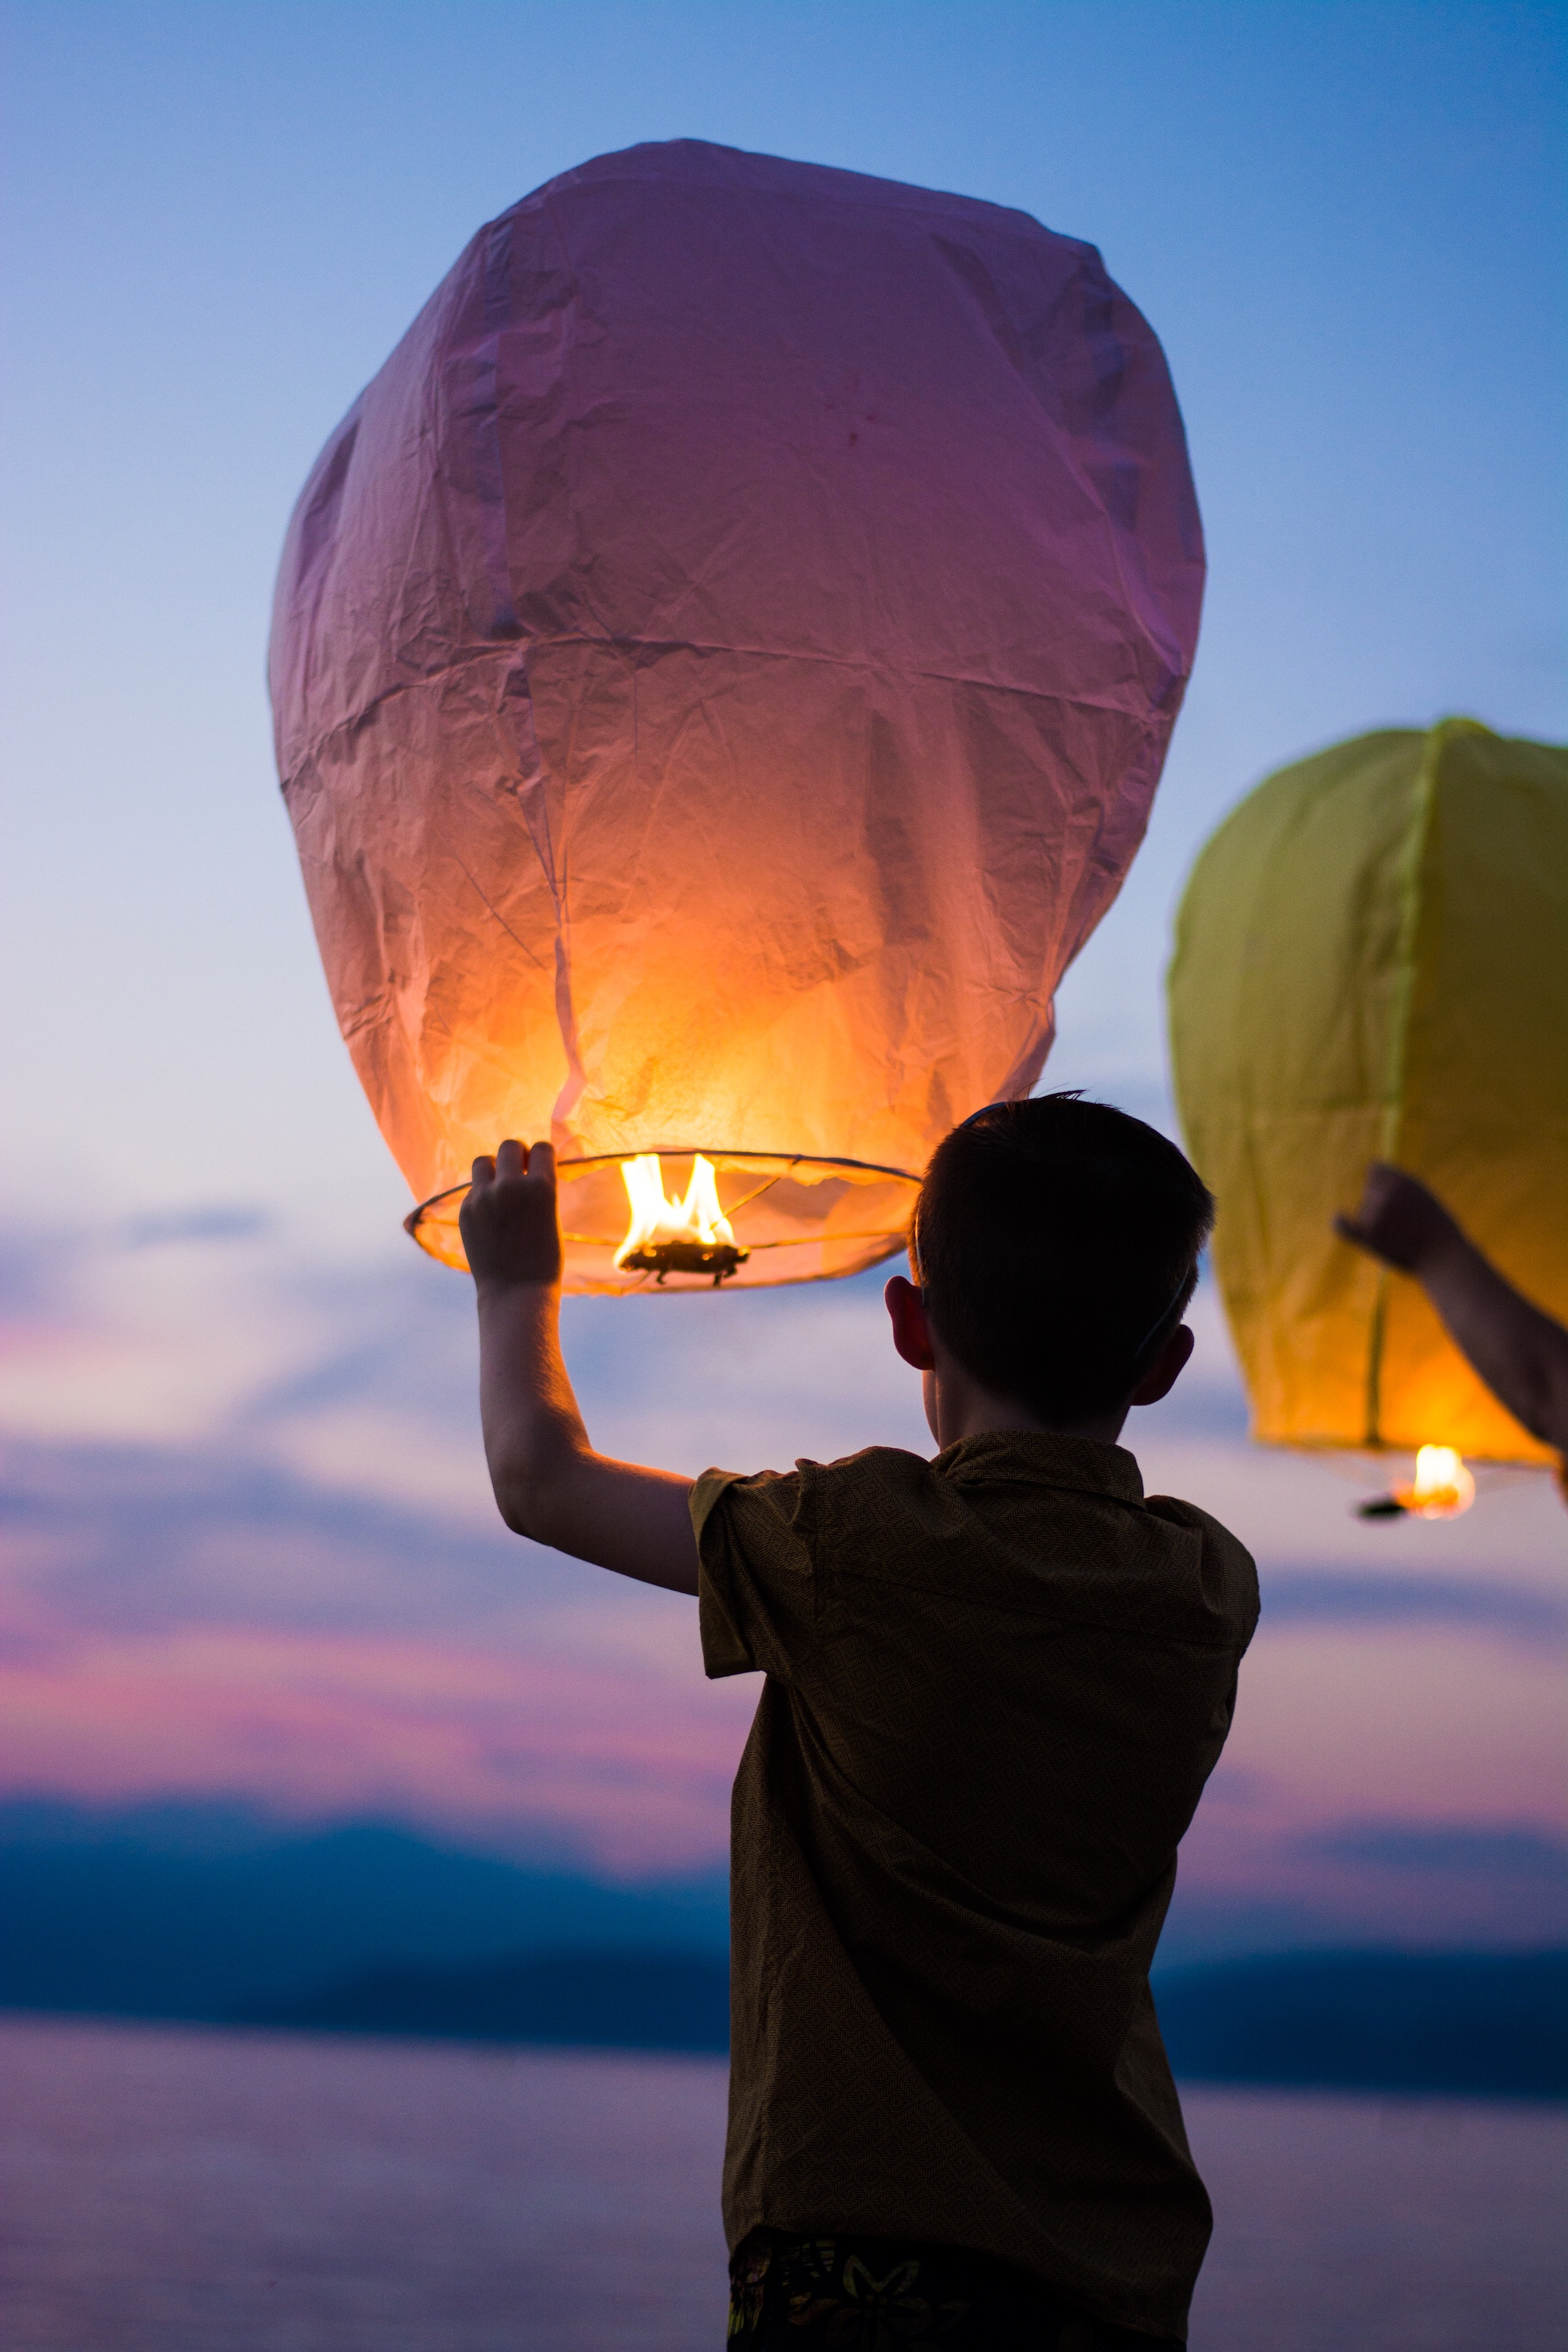 gianandrea villa children light lanterns unsplash